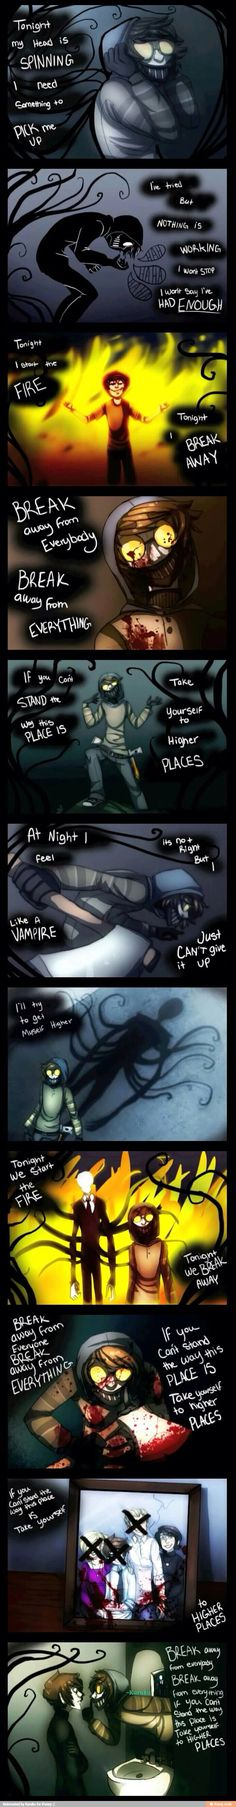 Three days grace and creepypasta  my two favorite things